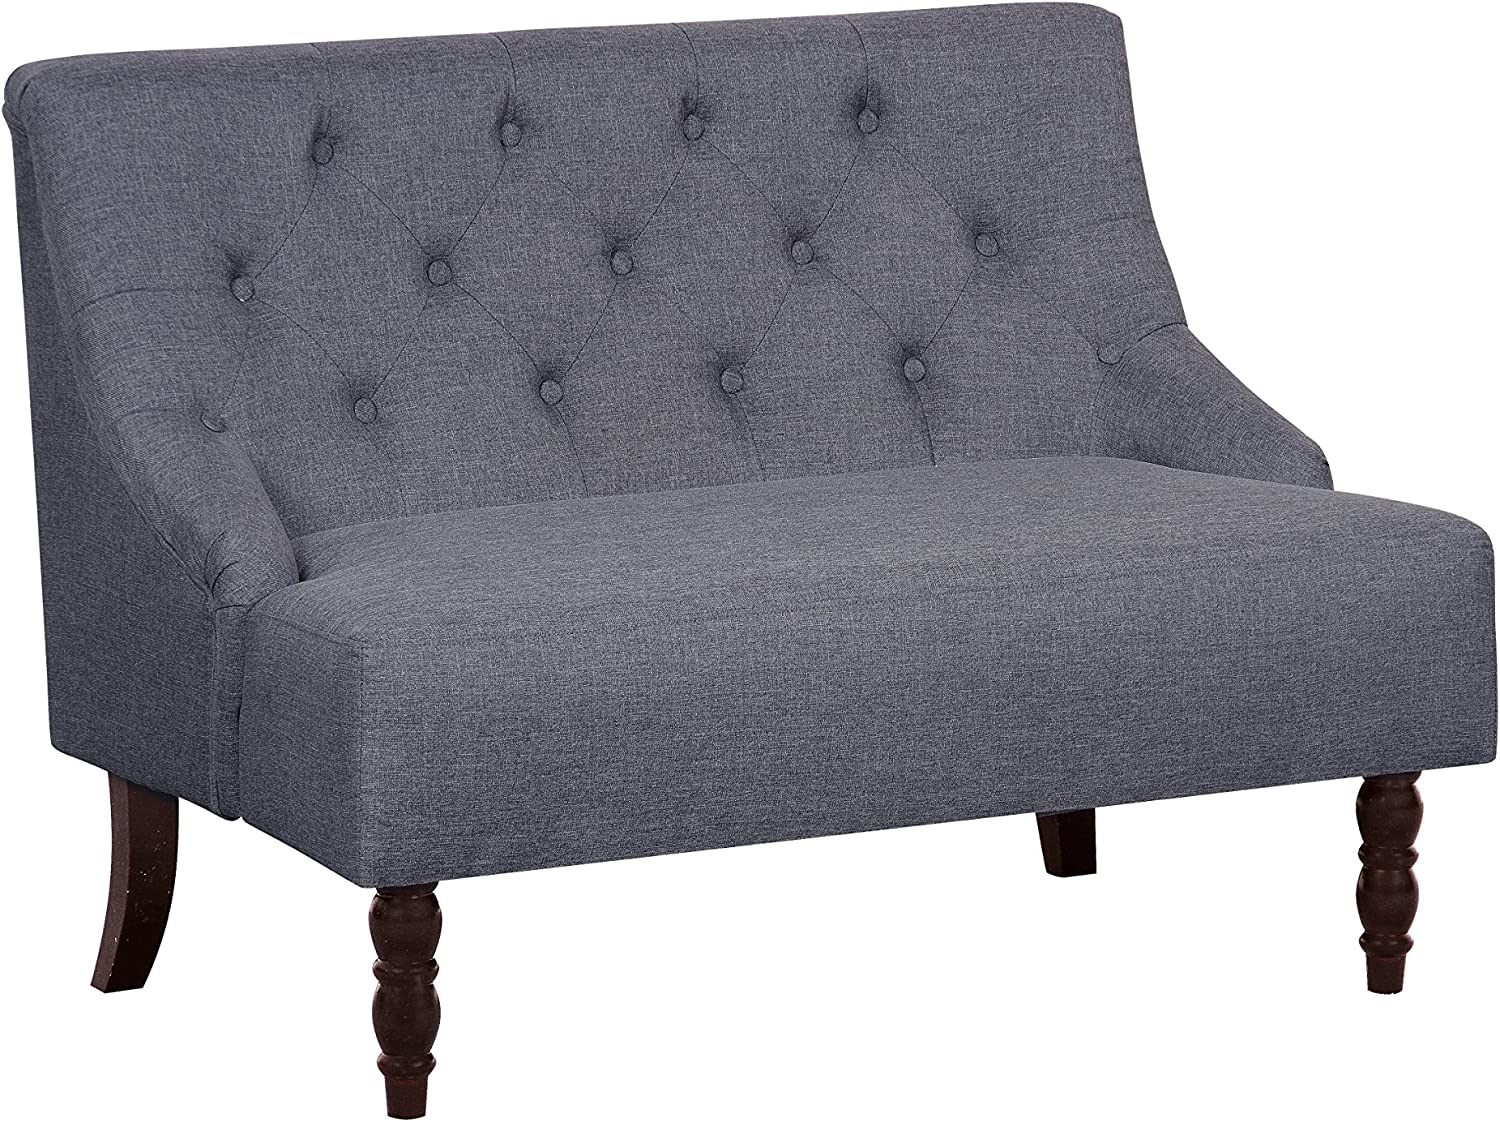 SALENEW very popular! Container Max 49% OFF Furniture Direct Angelina Linen Mid-Centur Upholstered